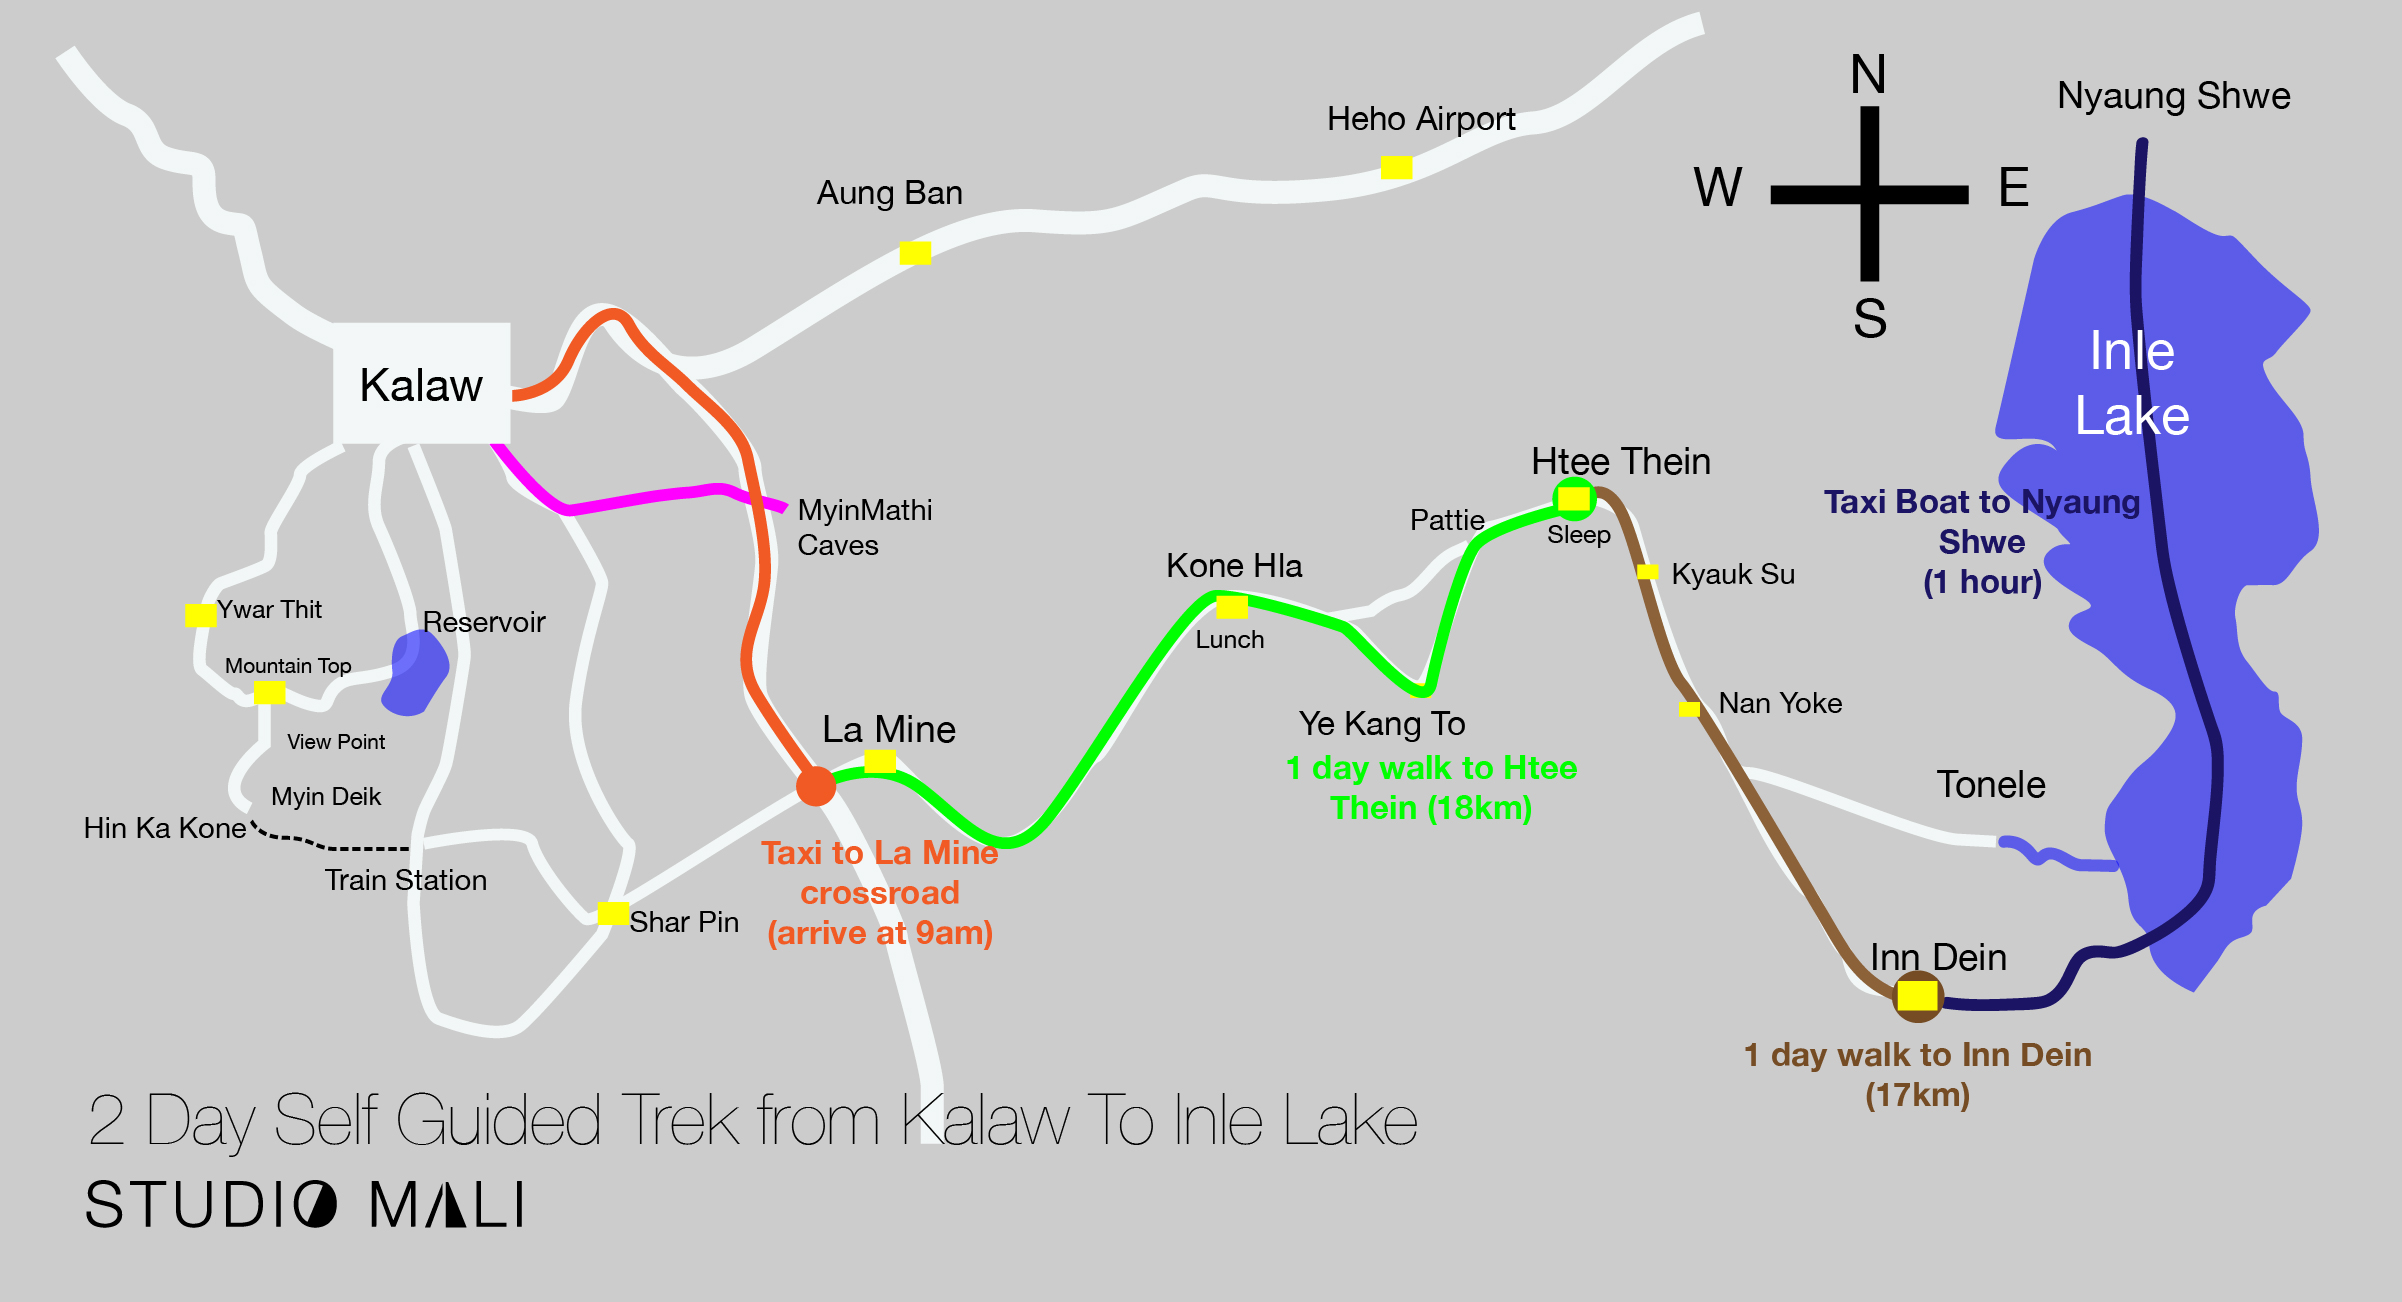 2 Day Self-Guided Trek From Kalaw To Inle Lake